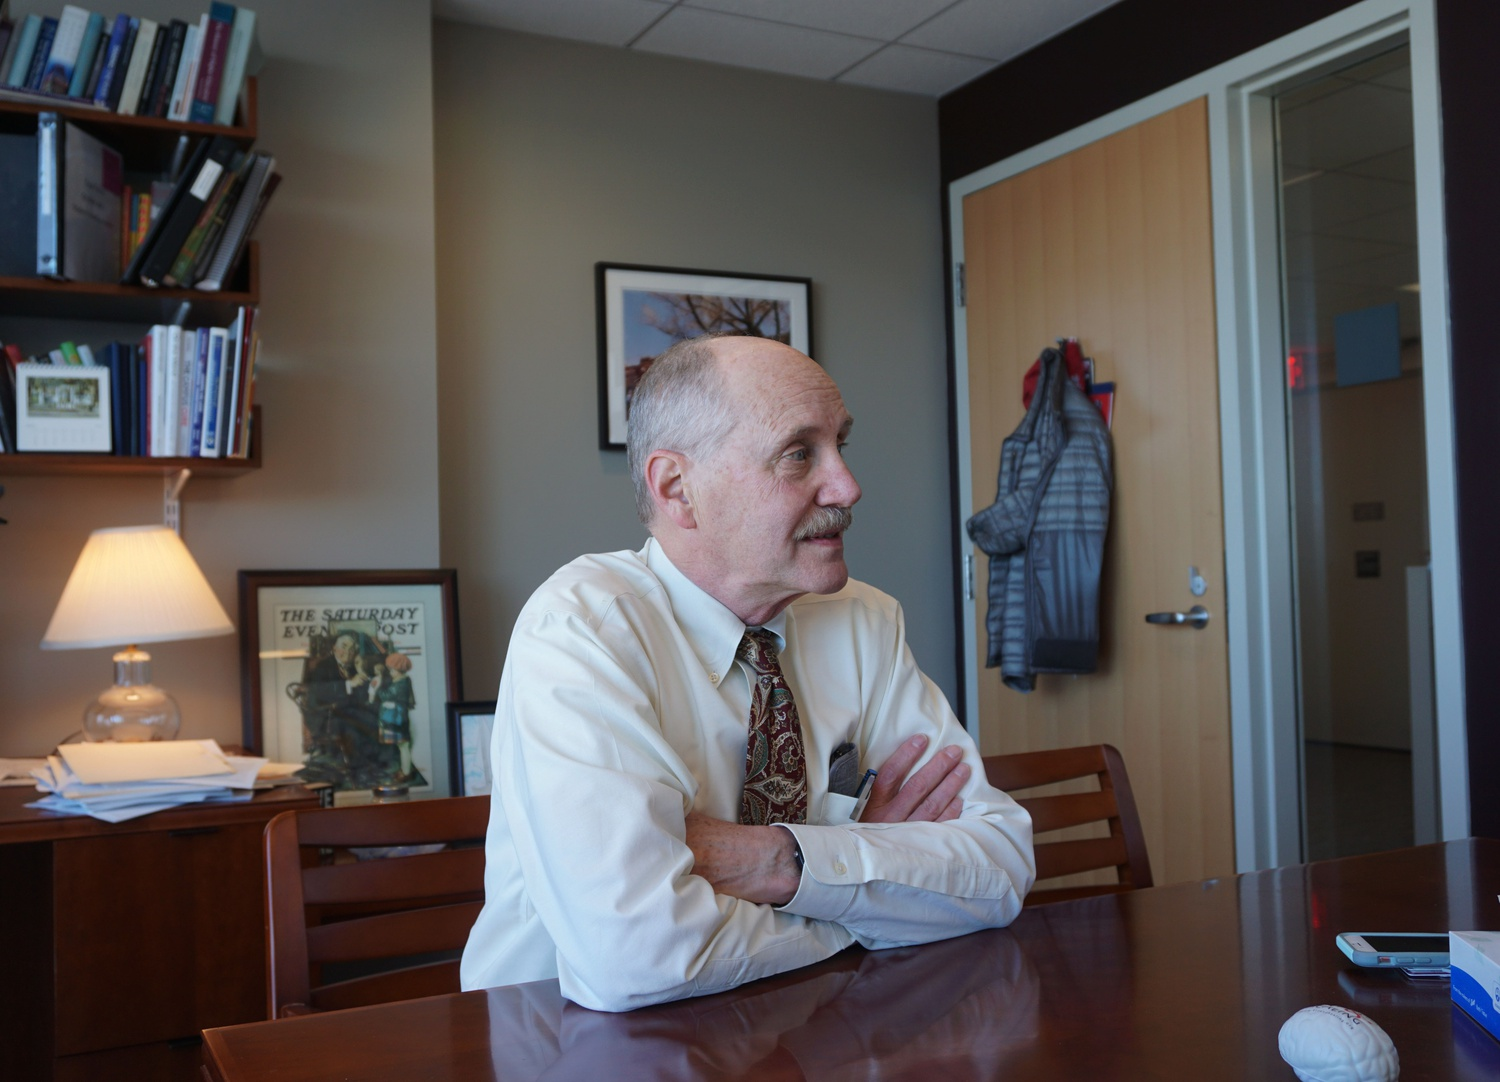 Harvard University Health Services Director Paul J. Barreira in his office in the Smith Campus Center.